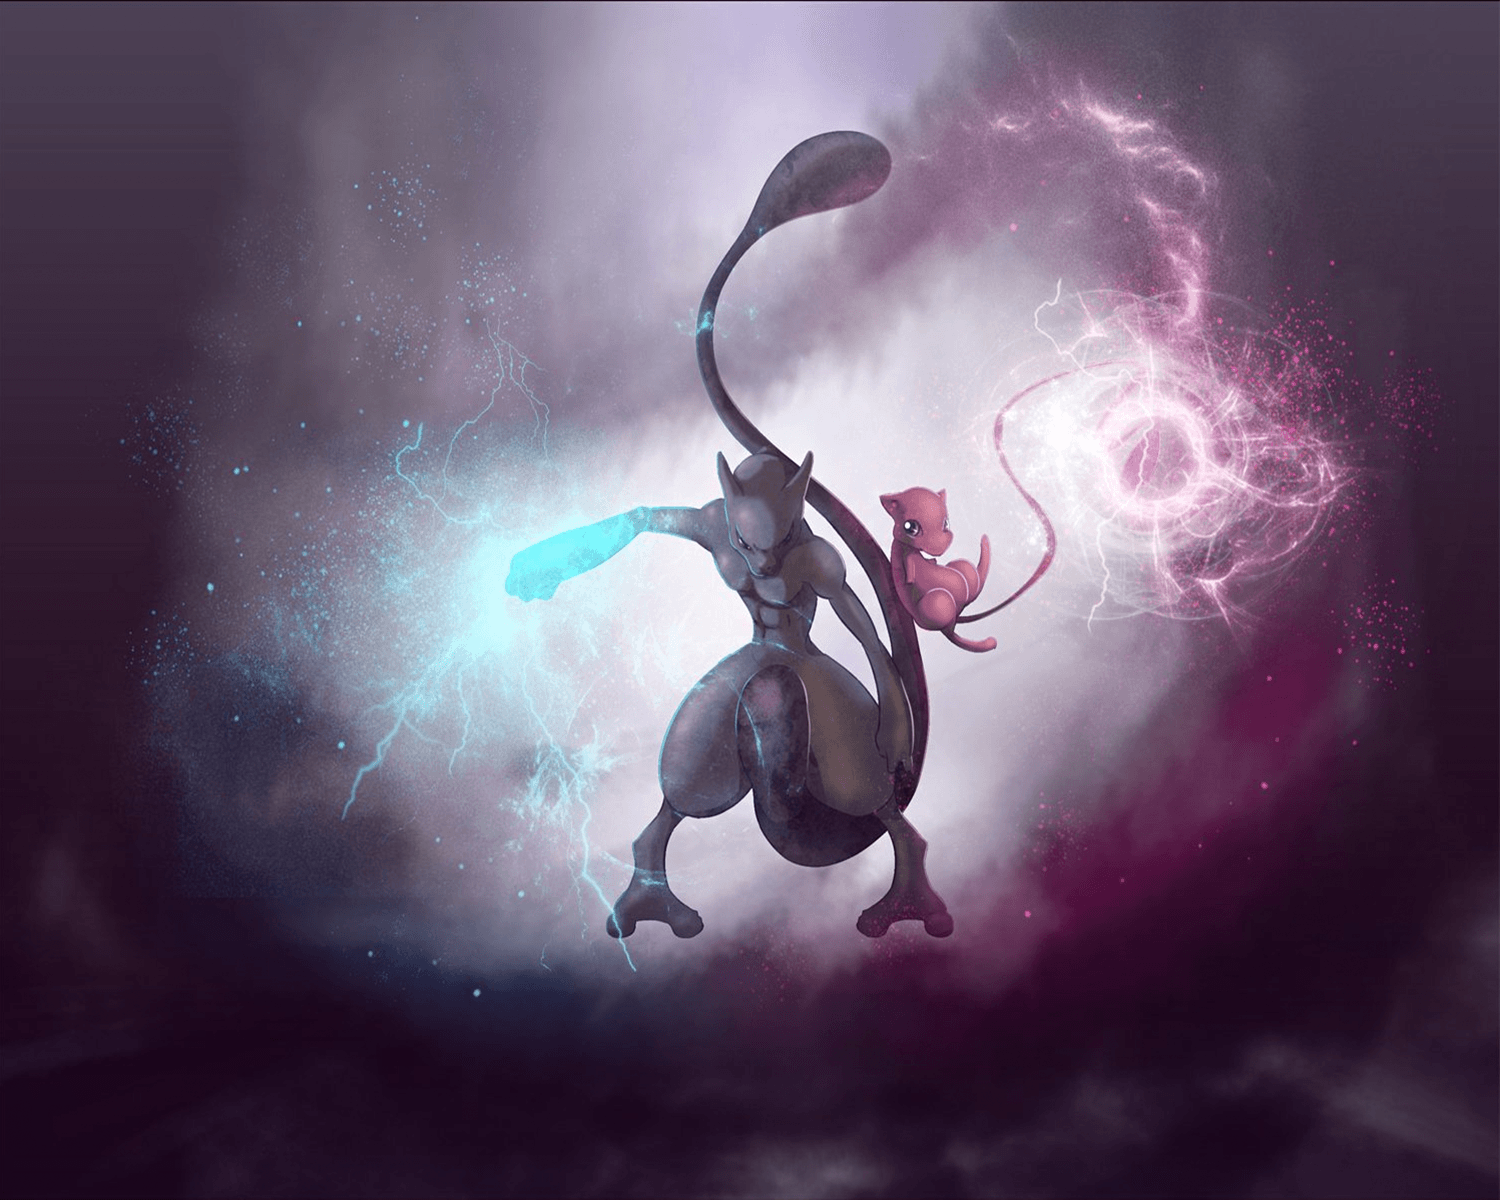 Mewtwo 3D Wallpapers - Top Free Mewtwo